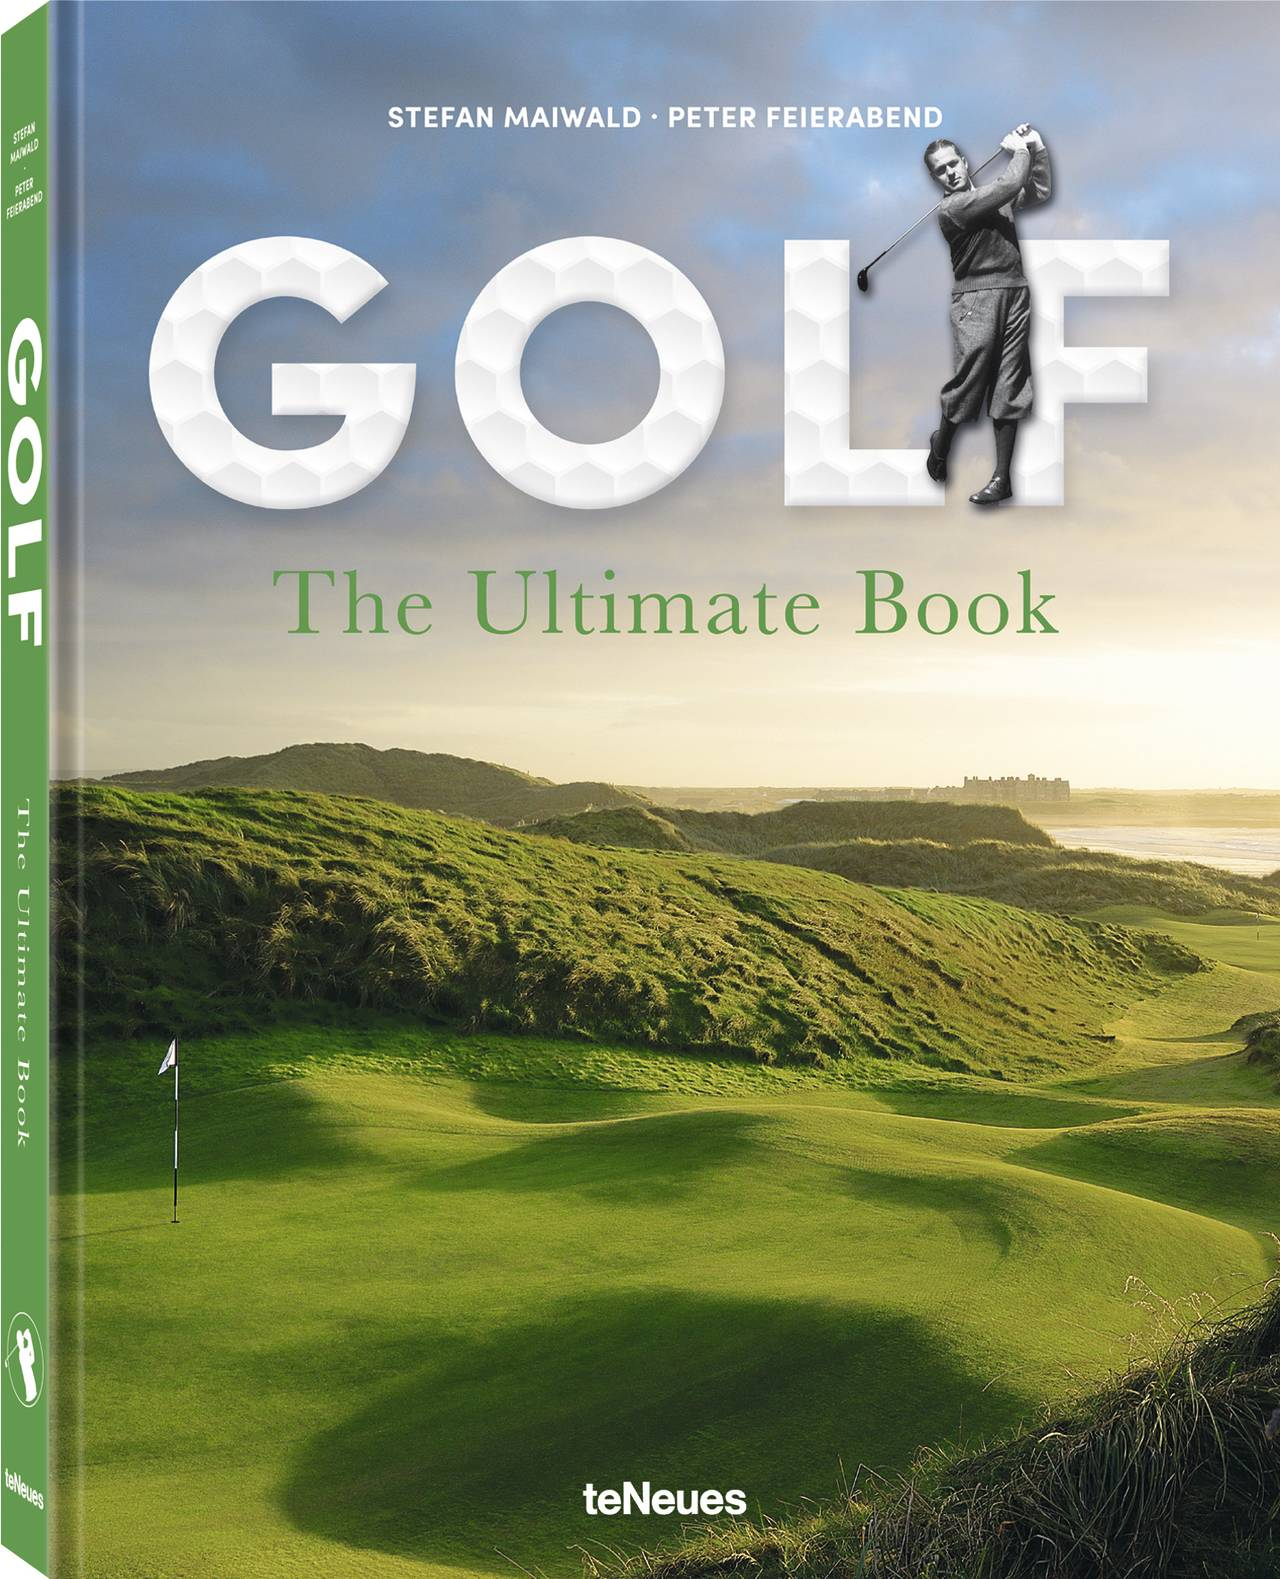 © GOLF - The Ultimate Book - Stefan Maiwald, Peter Feierabend, published by teNeues, www.teneues.com, DOONBEG, IRELAND, Photo © courtesy of Trump International Golf Links Doonbeg